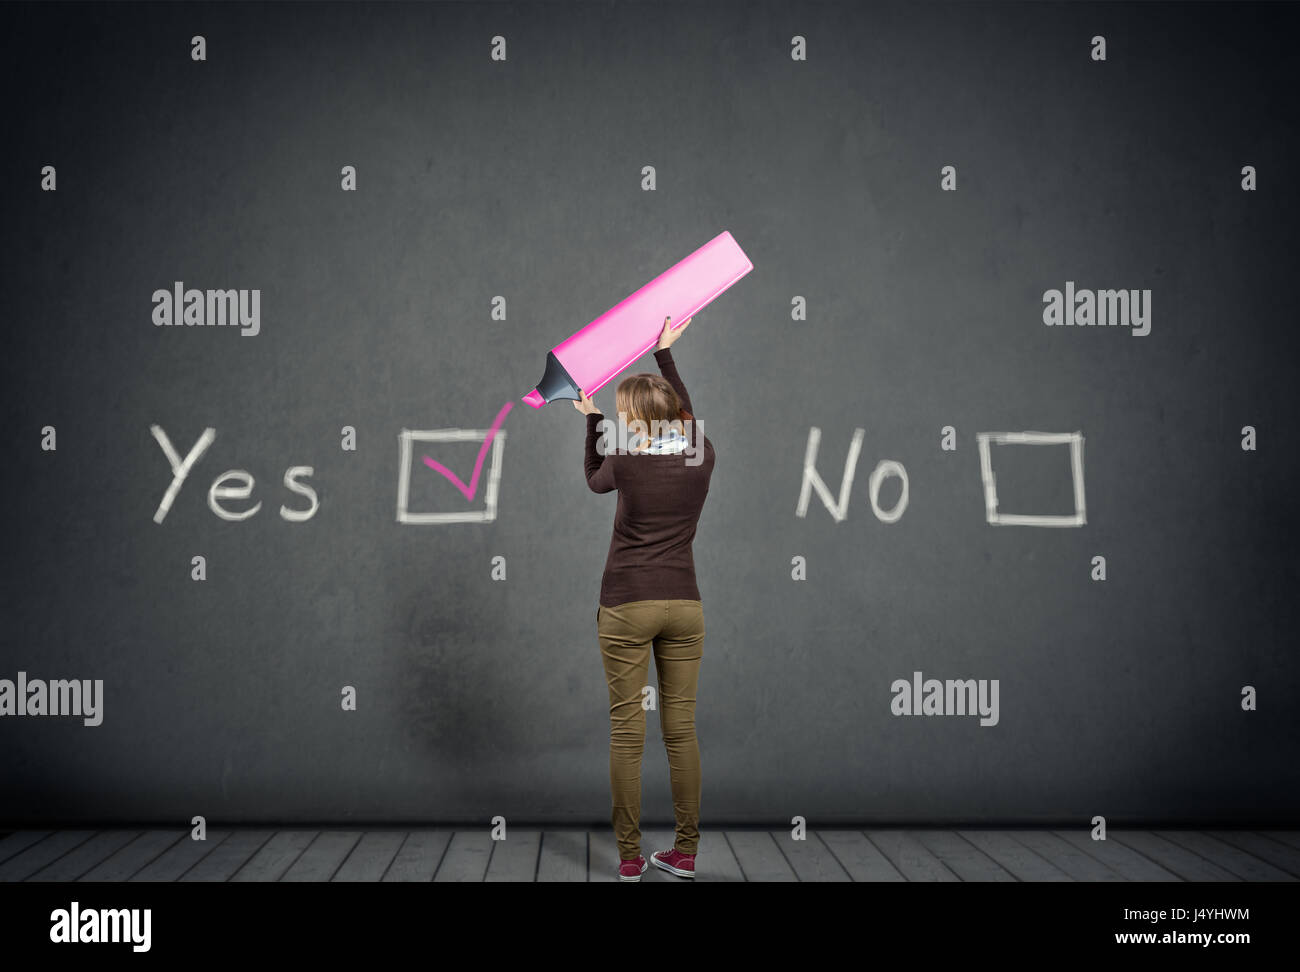 young schoolgirl with yes or no choice, voting for yes - Stock Image